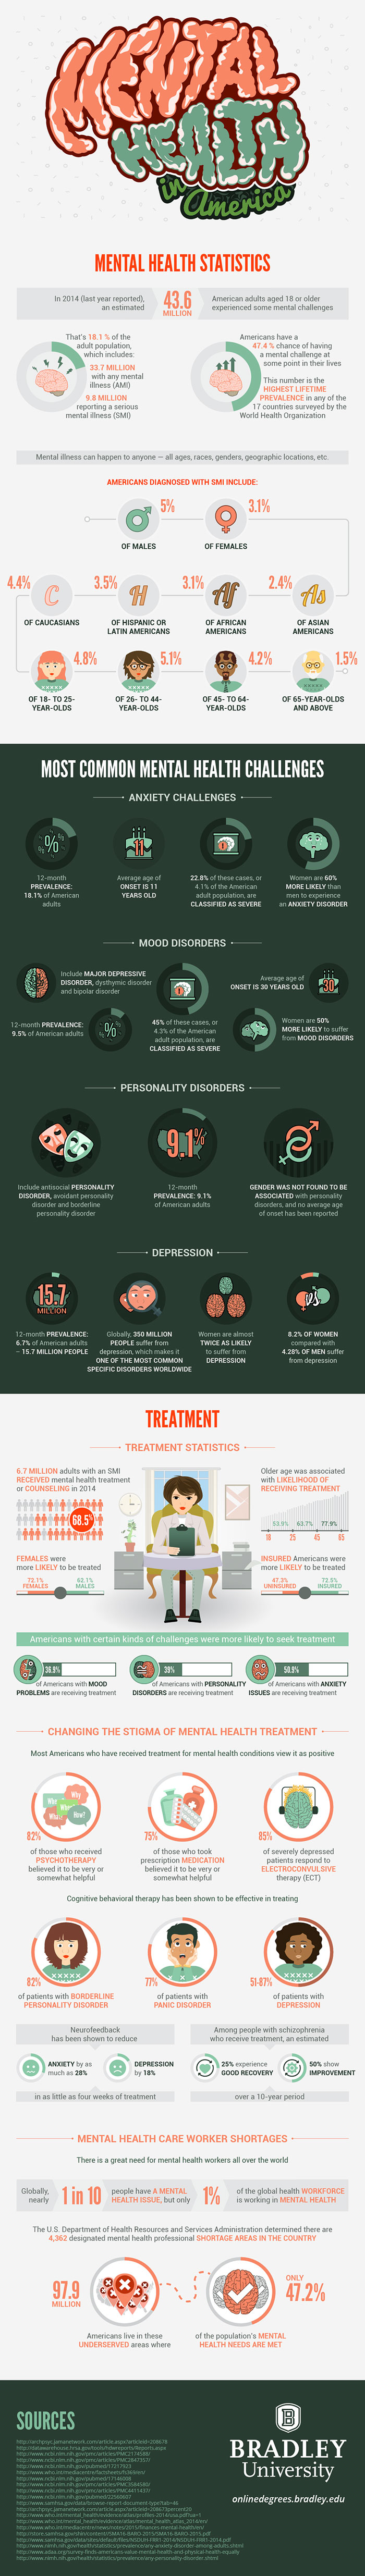 Mental-health-in-America-infographic